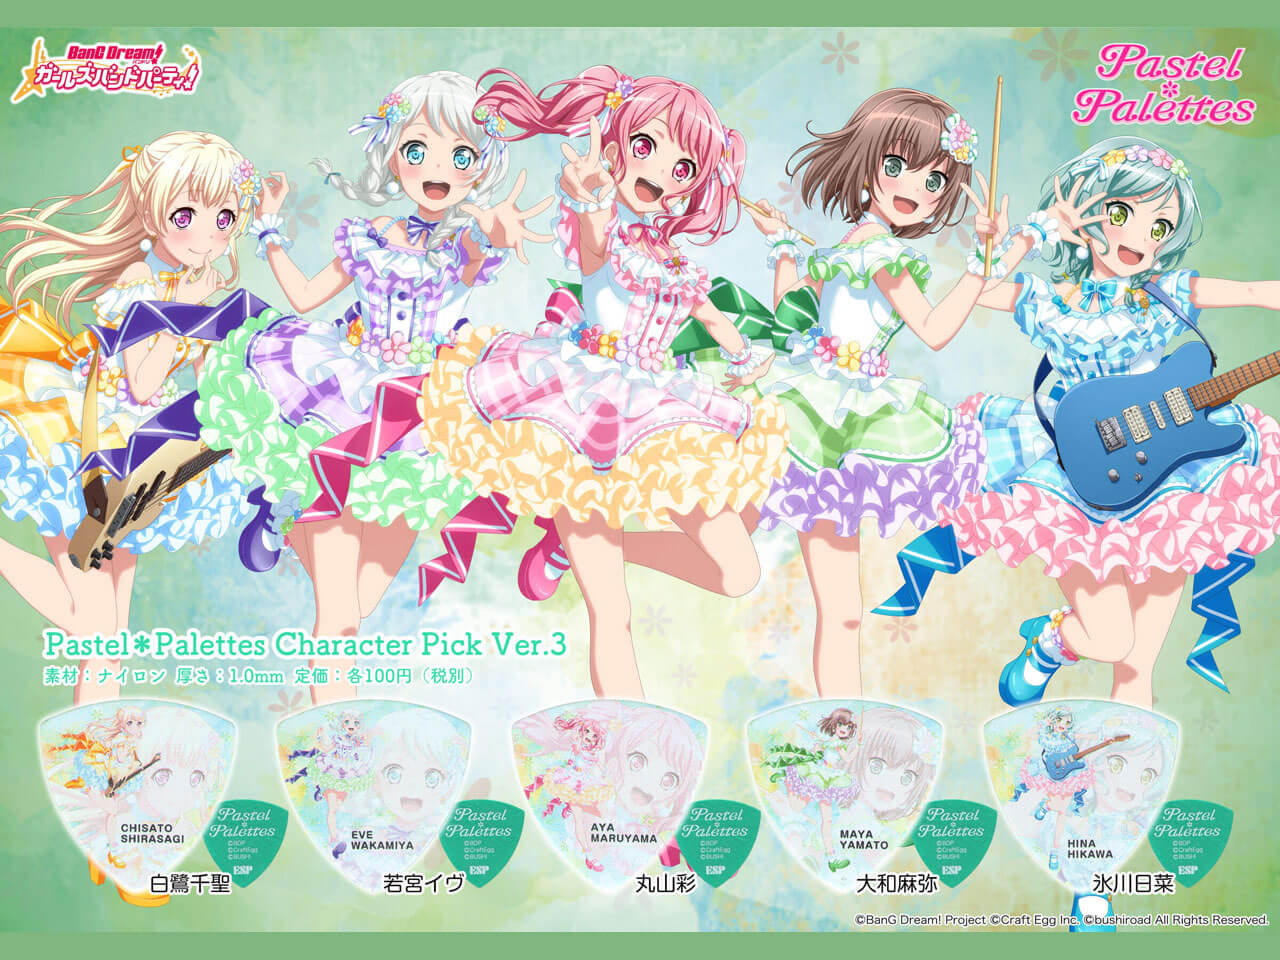 【ESP×BanG Dream!コラボピック】Pastel*Palettes Character Pick Ver.3 全5種(各一枚)セット